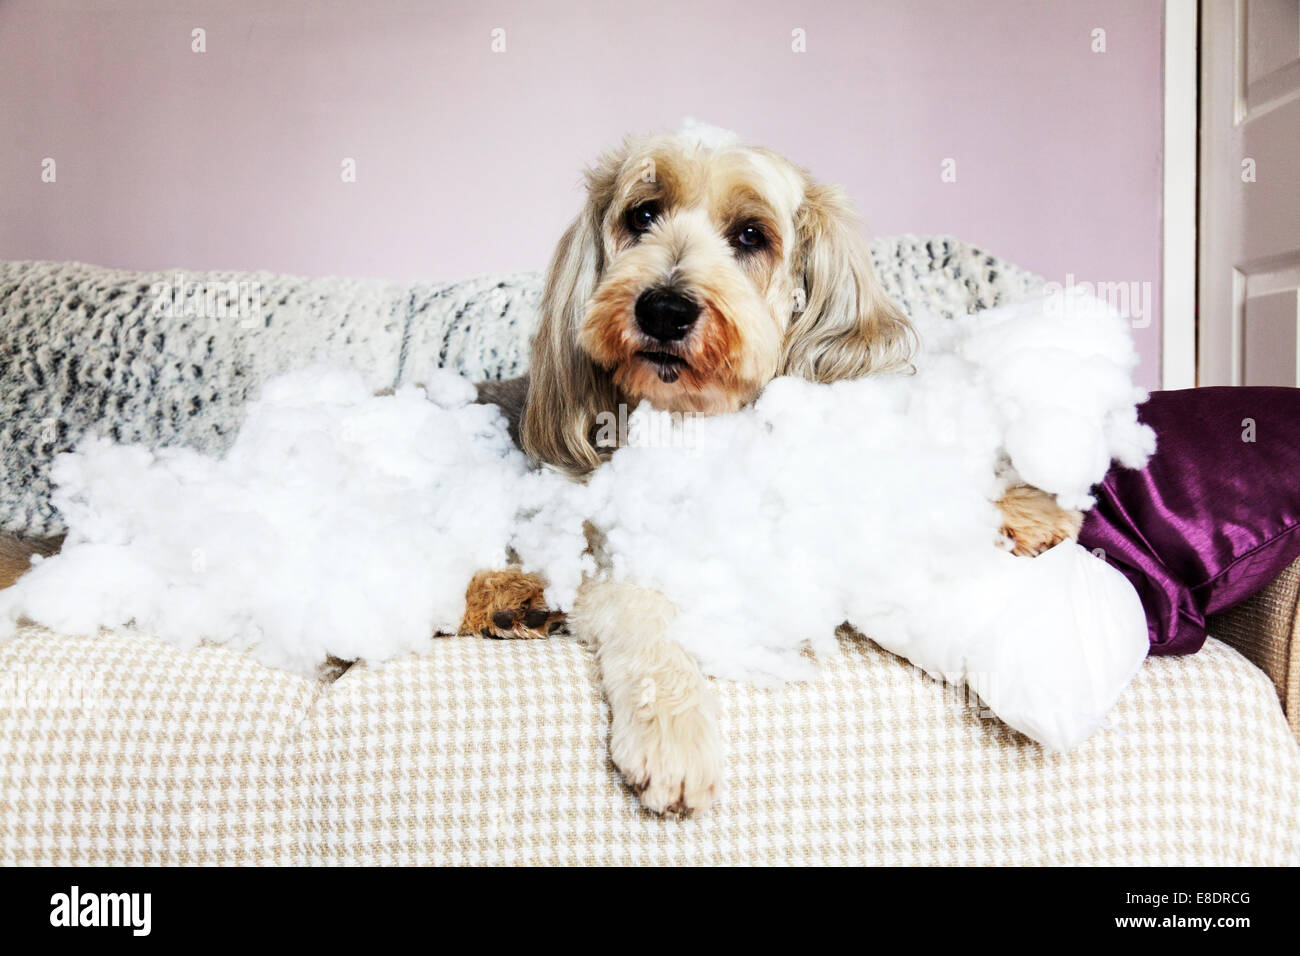 destructive pet dog shredded pillow looking proud guilty innocent stuffing around canine proving guilt bearded collie - Stock Image